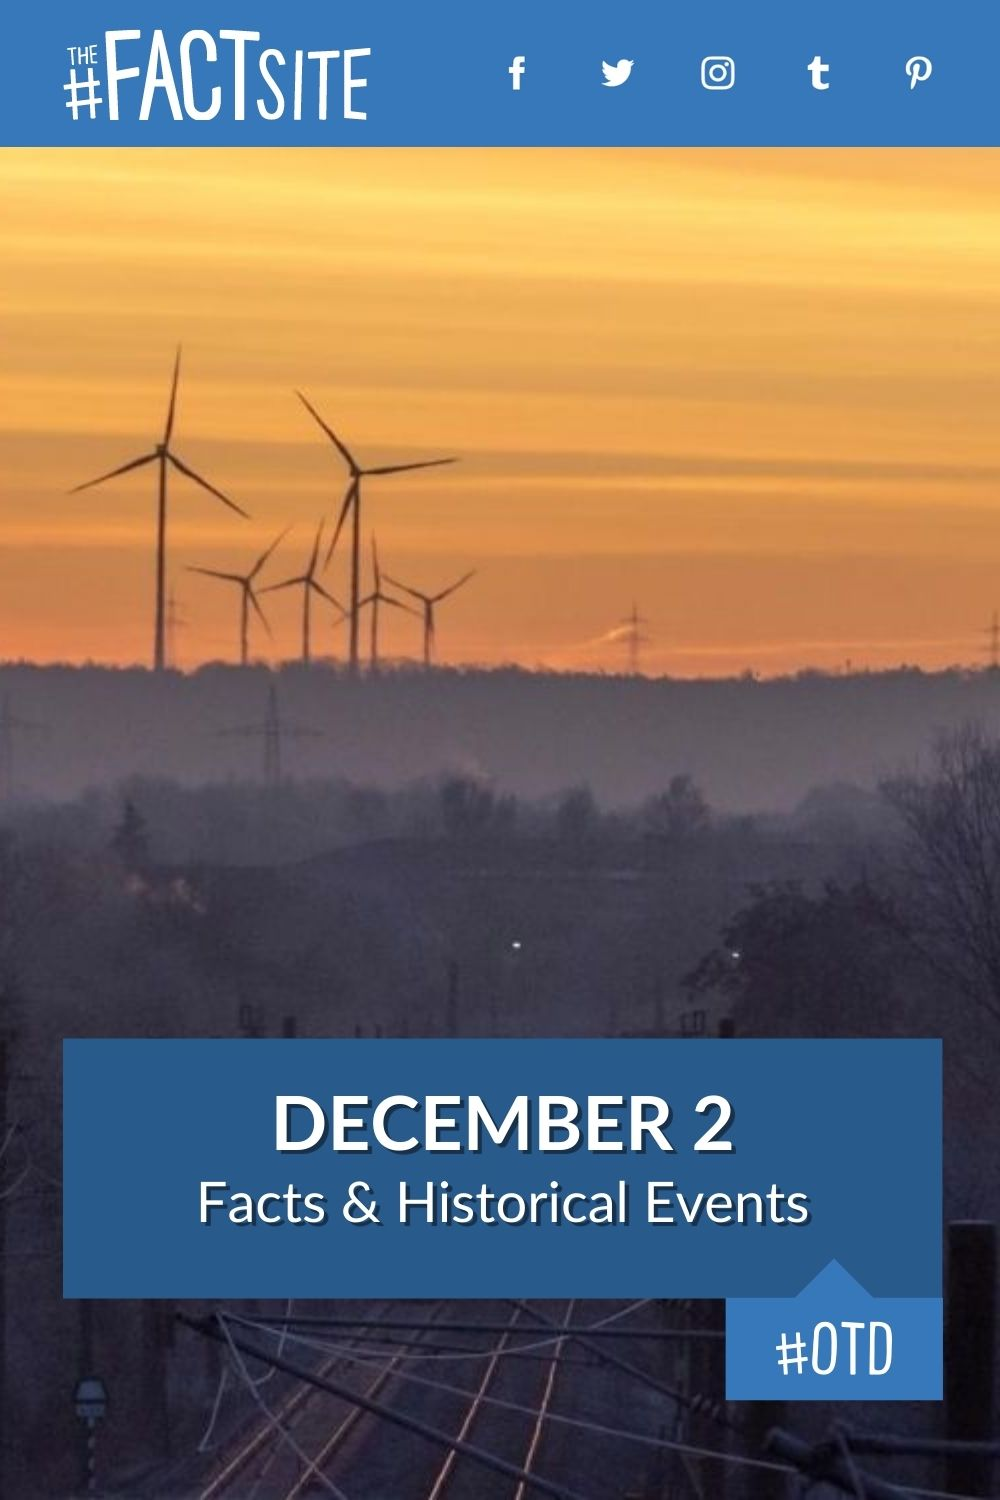 Facts & Historic Events That Happened on December 2